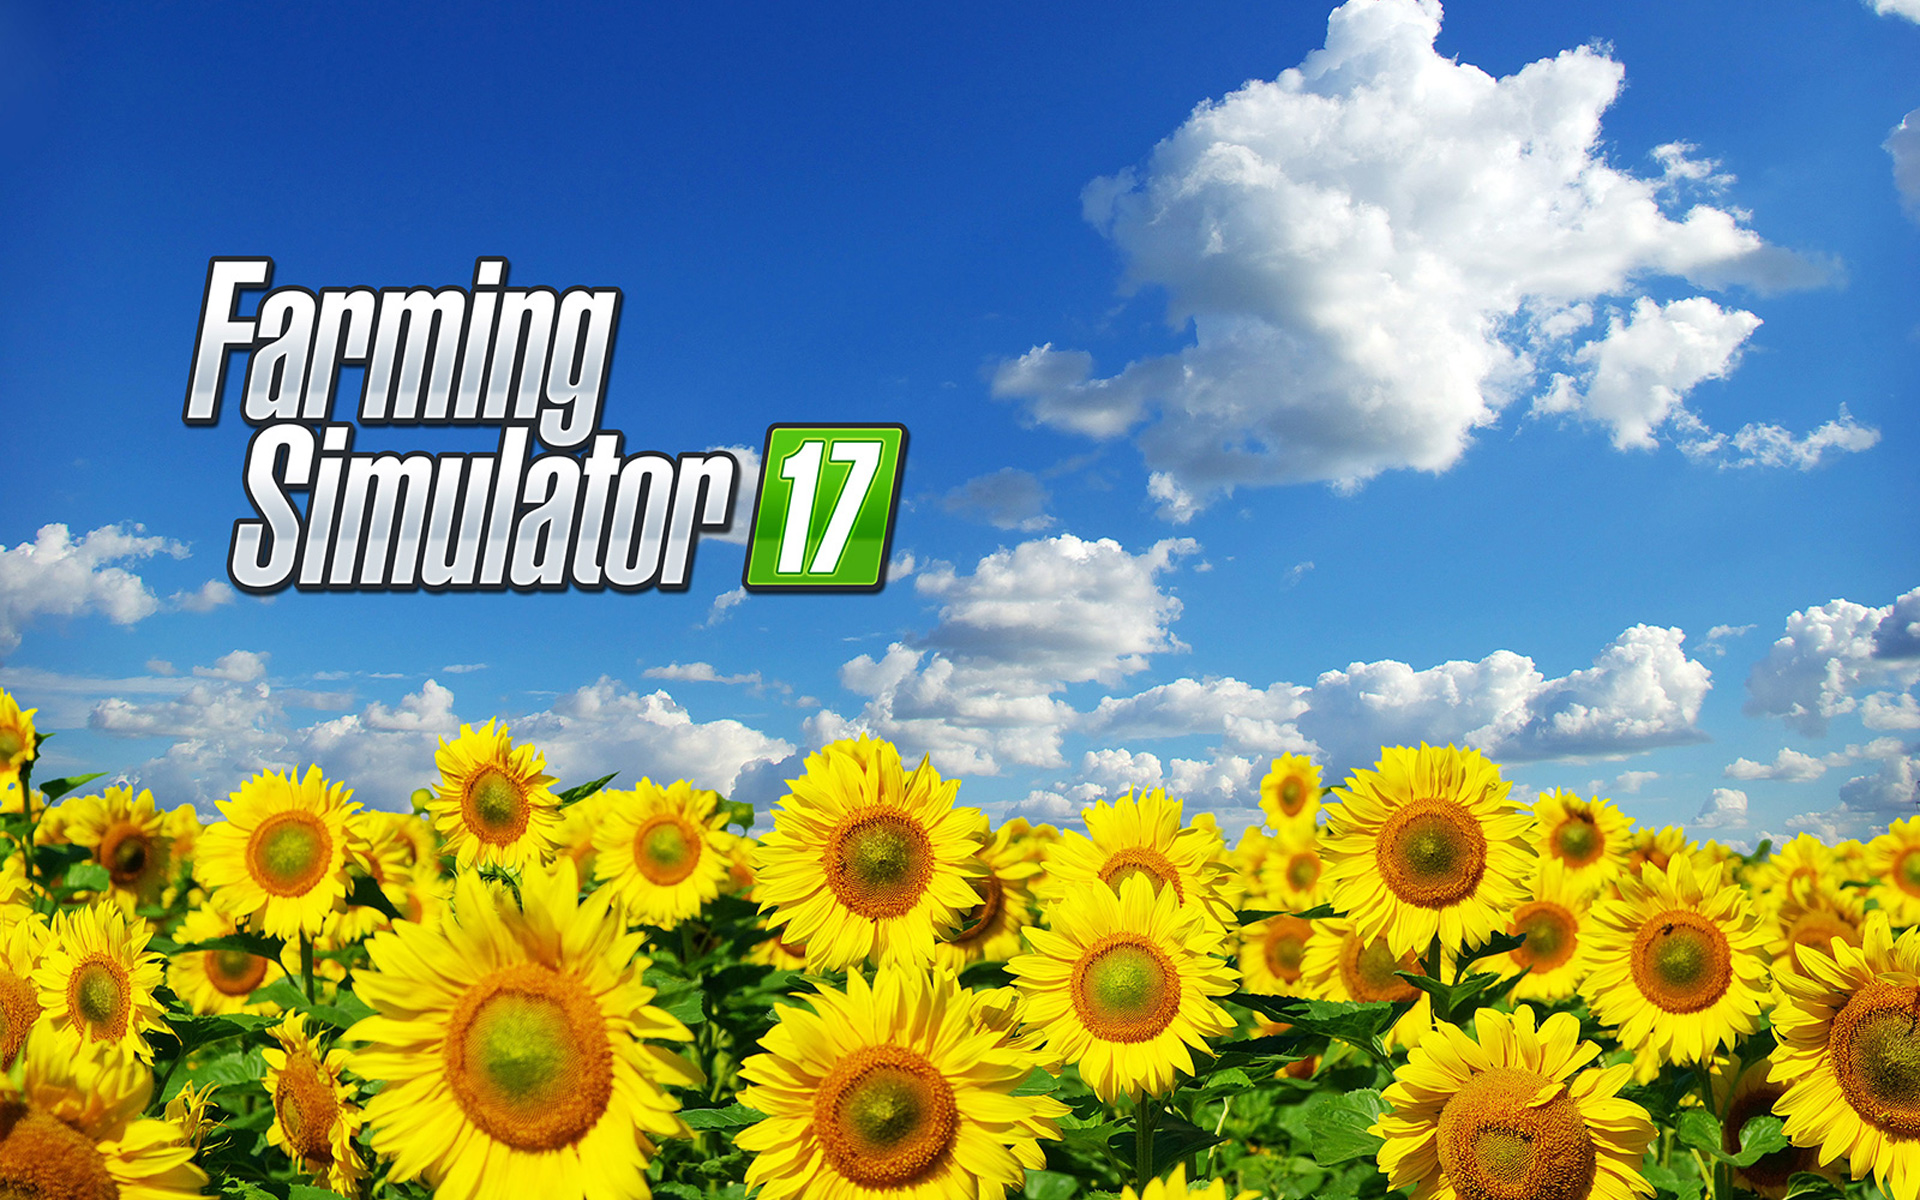 Free Farming Simulator 17 Wallpaper in 1920x1200